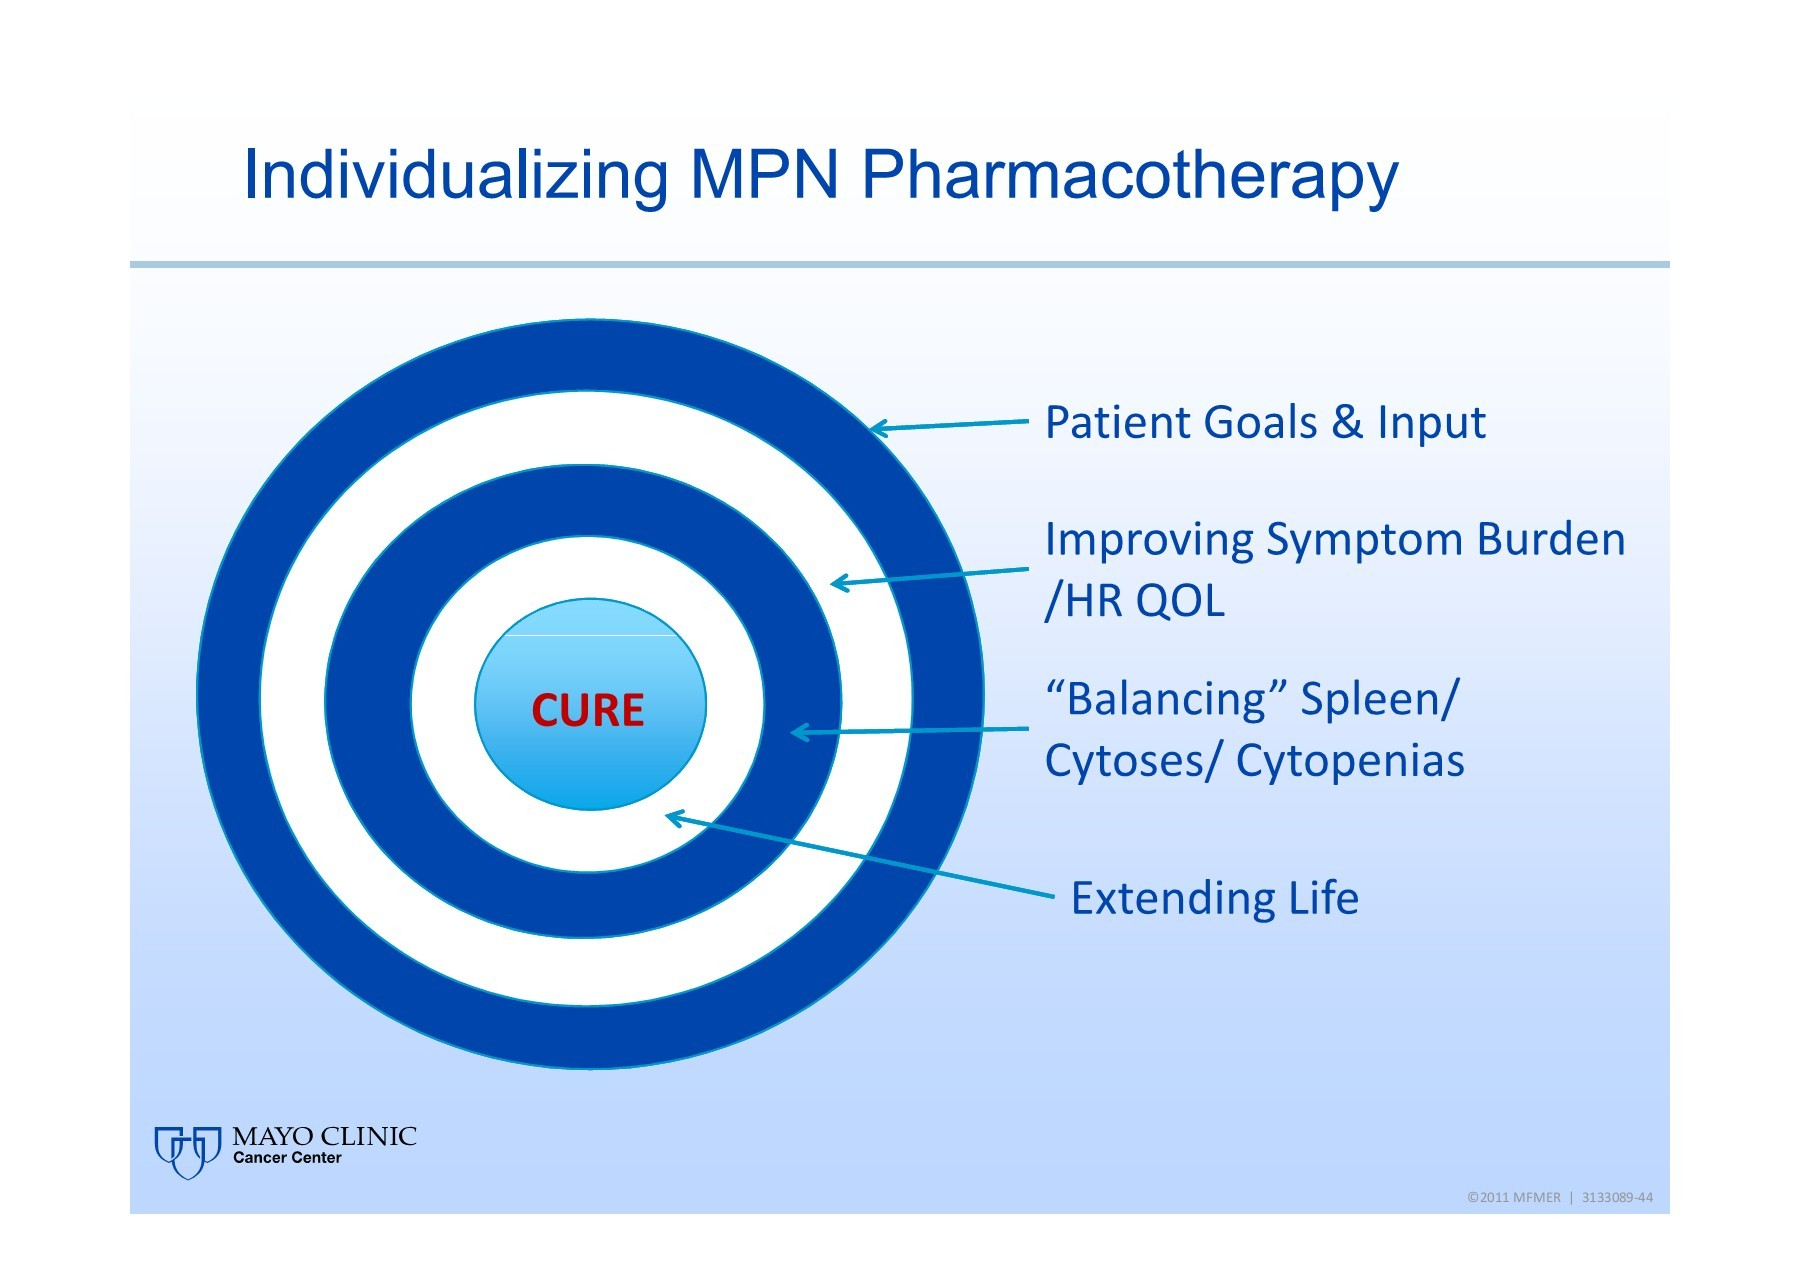 Overview of Mayo Clinic Cancer Center - MPN Advocacy | Focusky